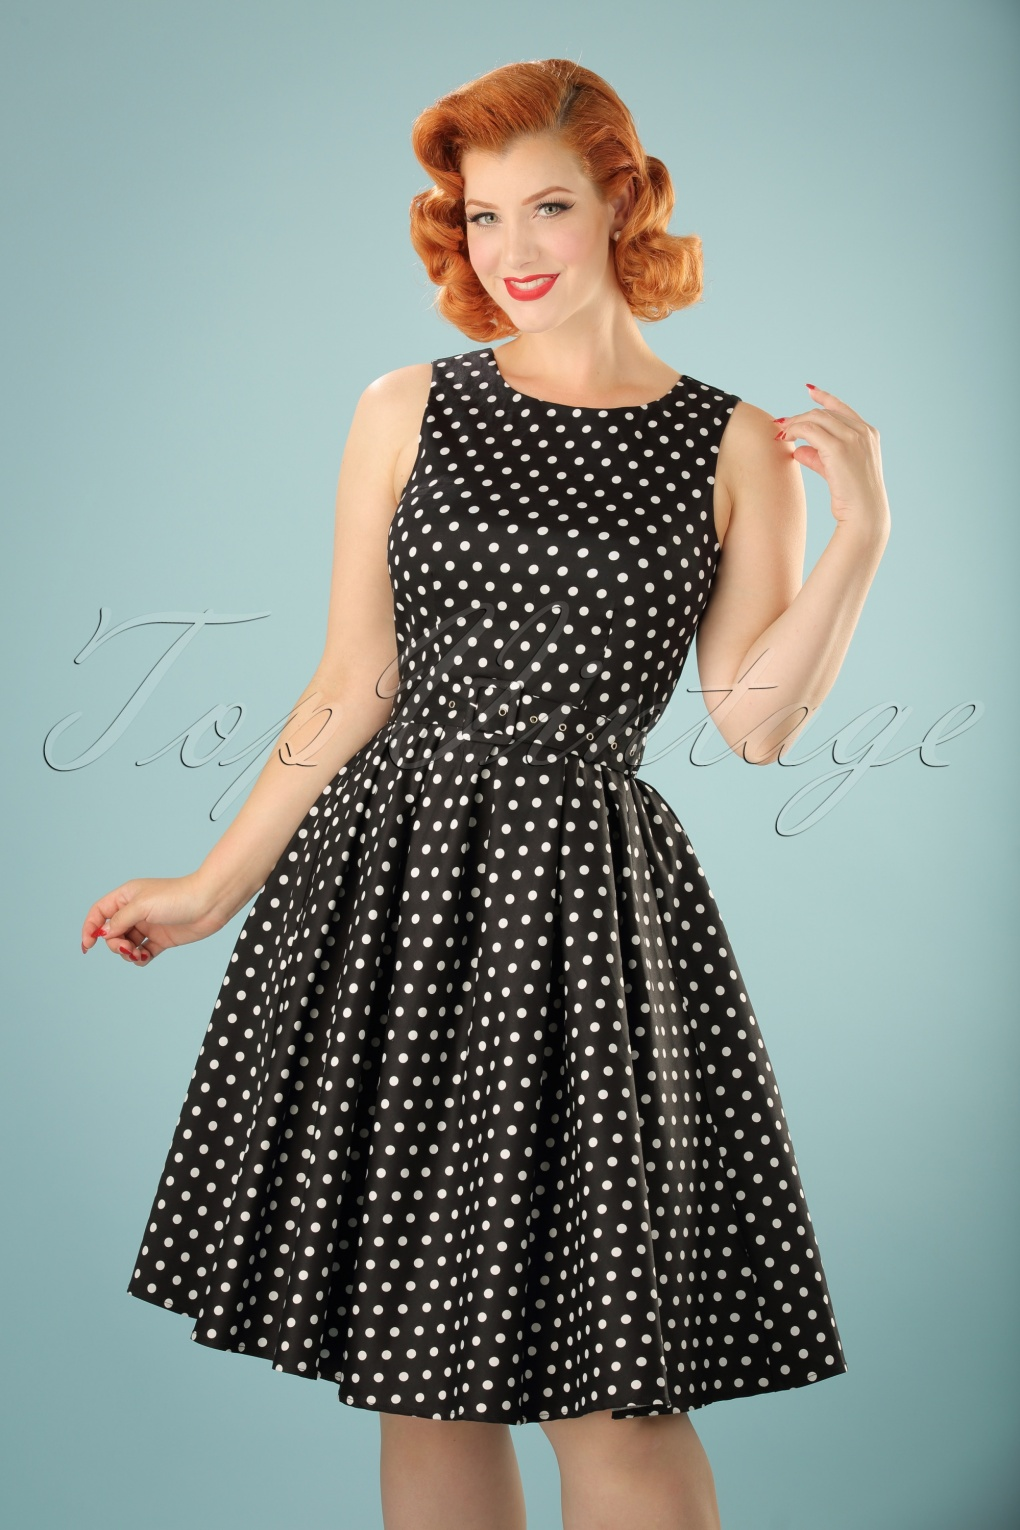 1940s Pinup Dresses for Sale 50s Lola Polkadot Swing Dress in Black £40.90 AT vintagedancer.com